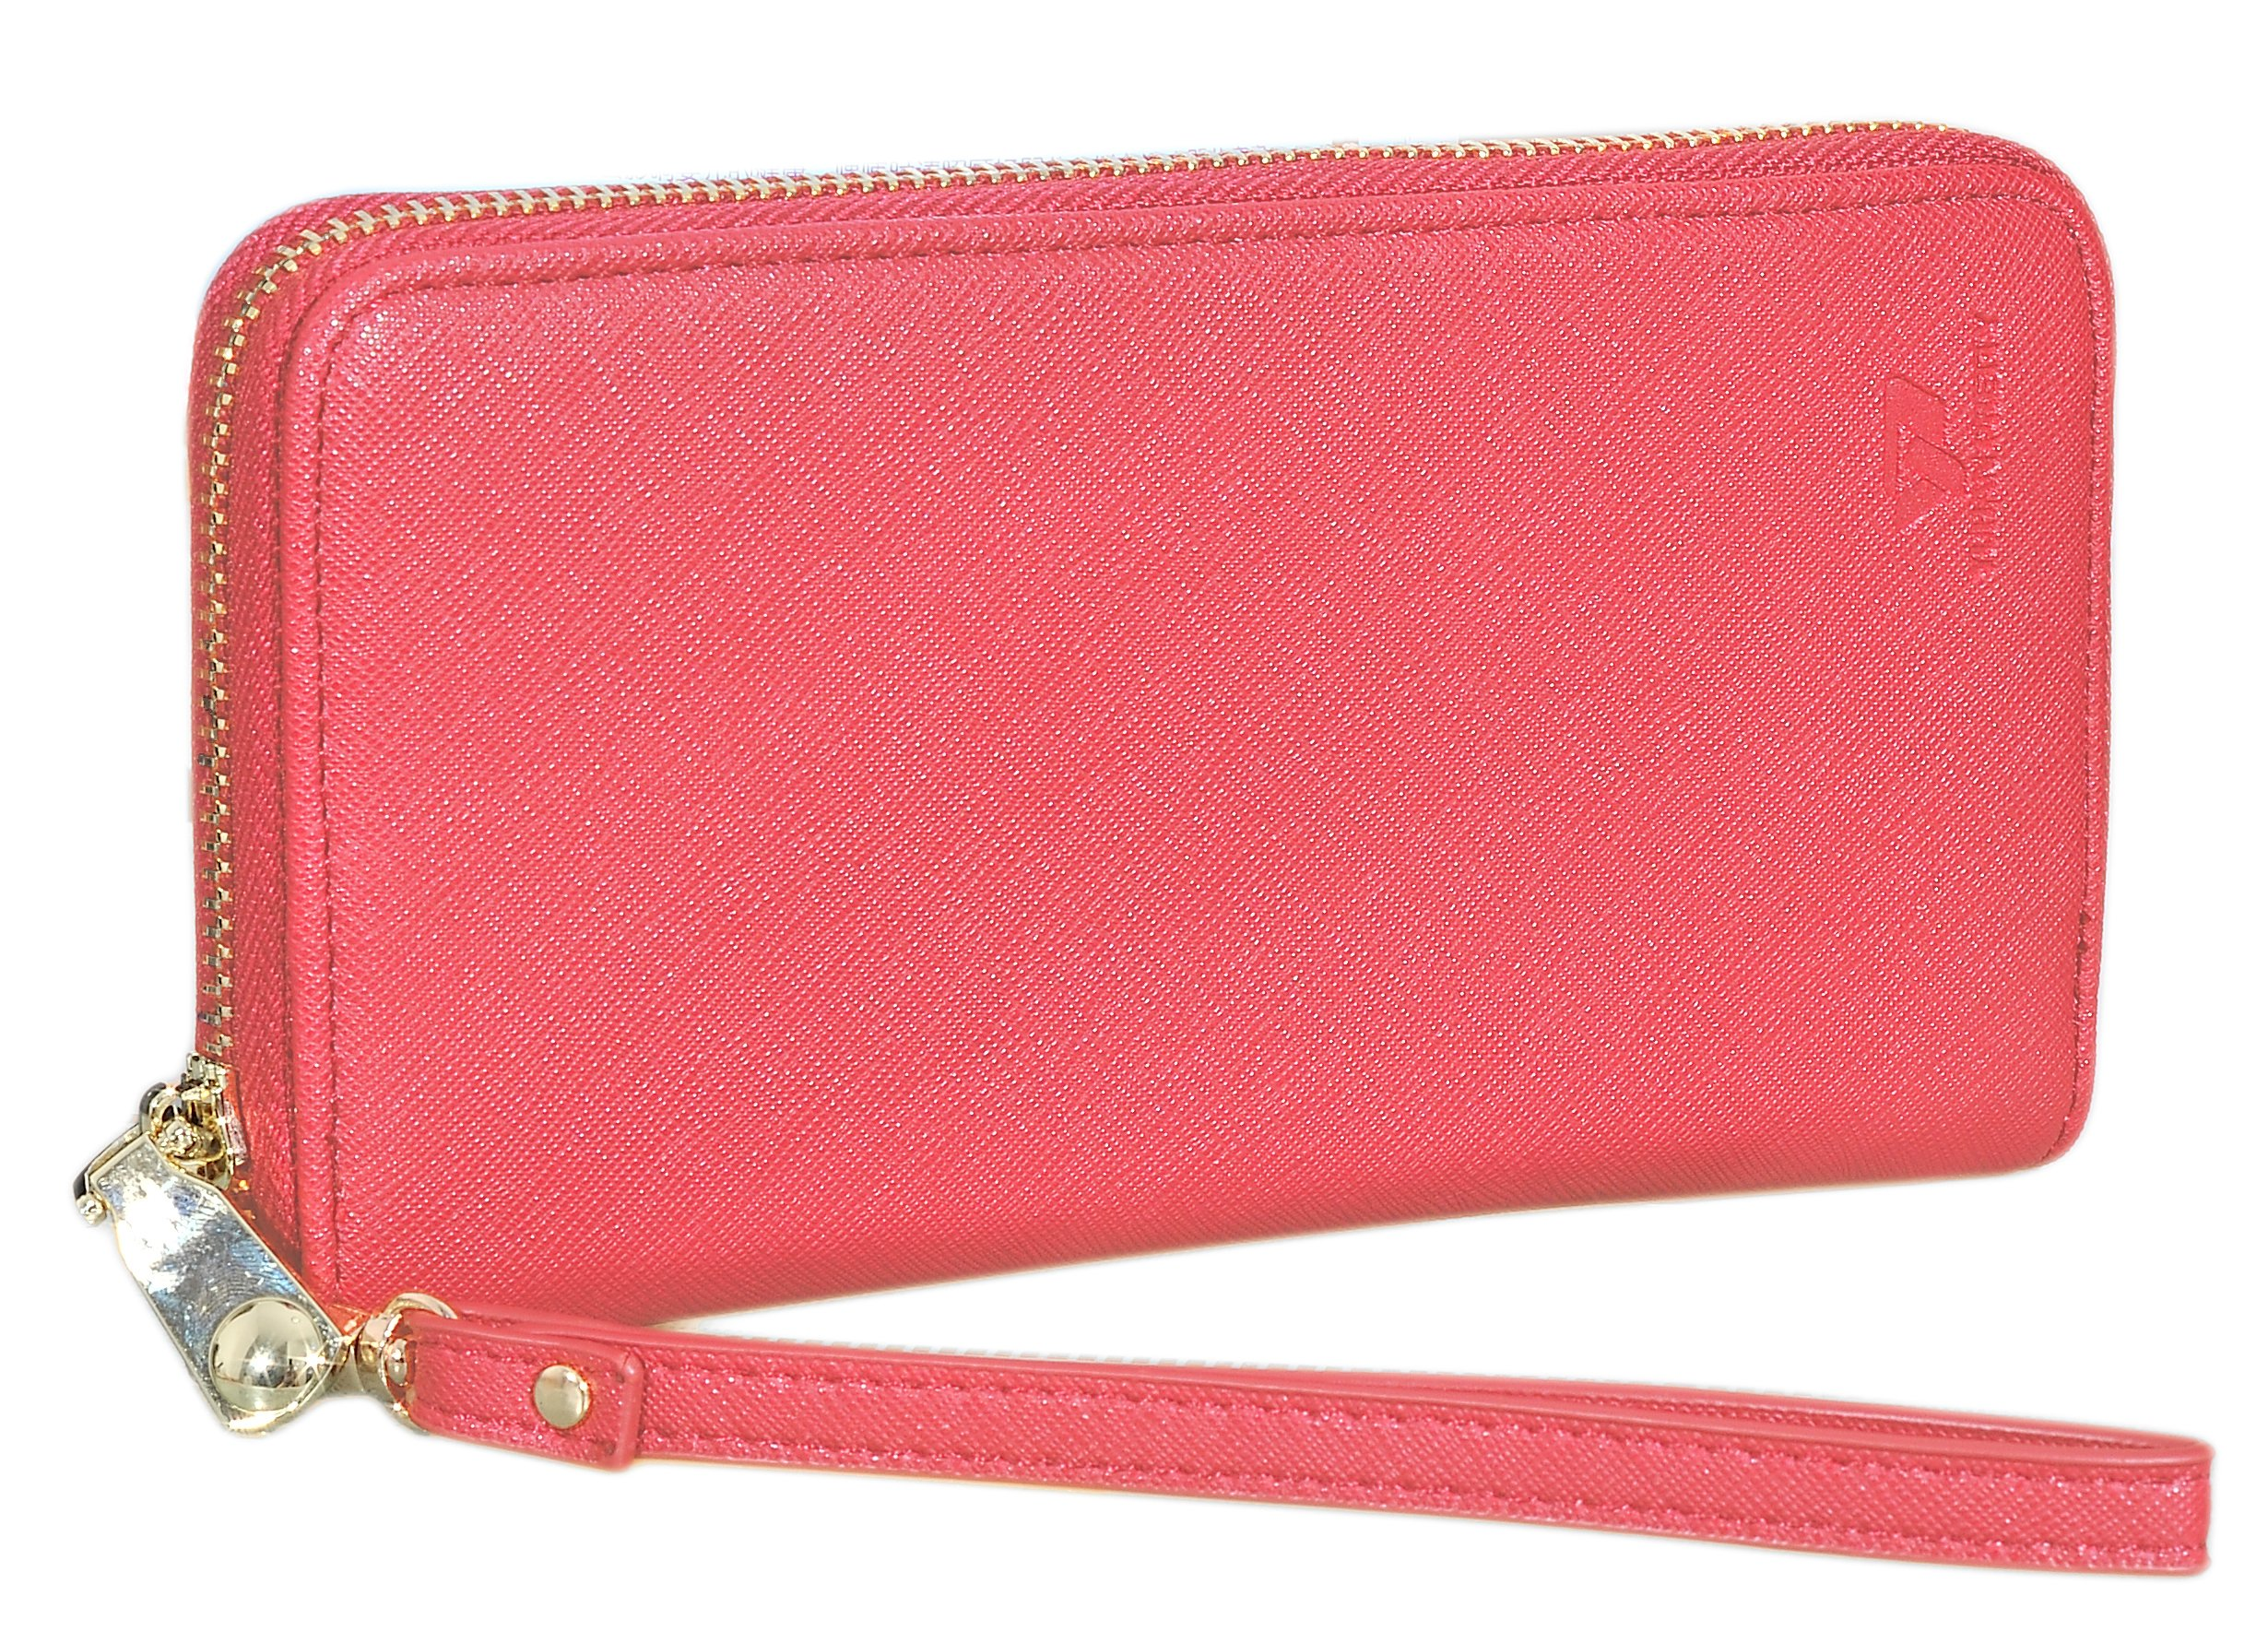 Womens Leather Wallet Clutch Long Zipper Wallets with Wrist Strap Card Holder (Red - New) by Yuhan Pretty (Image #6)